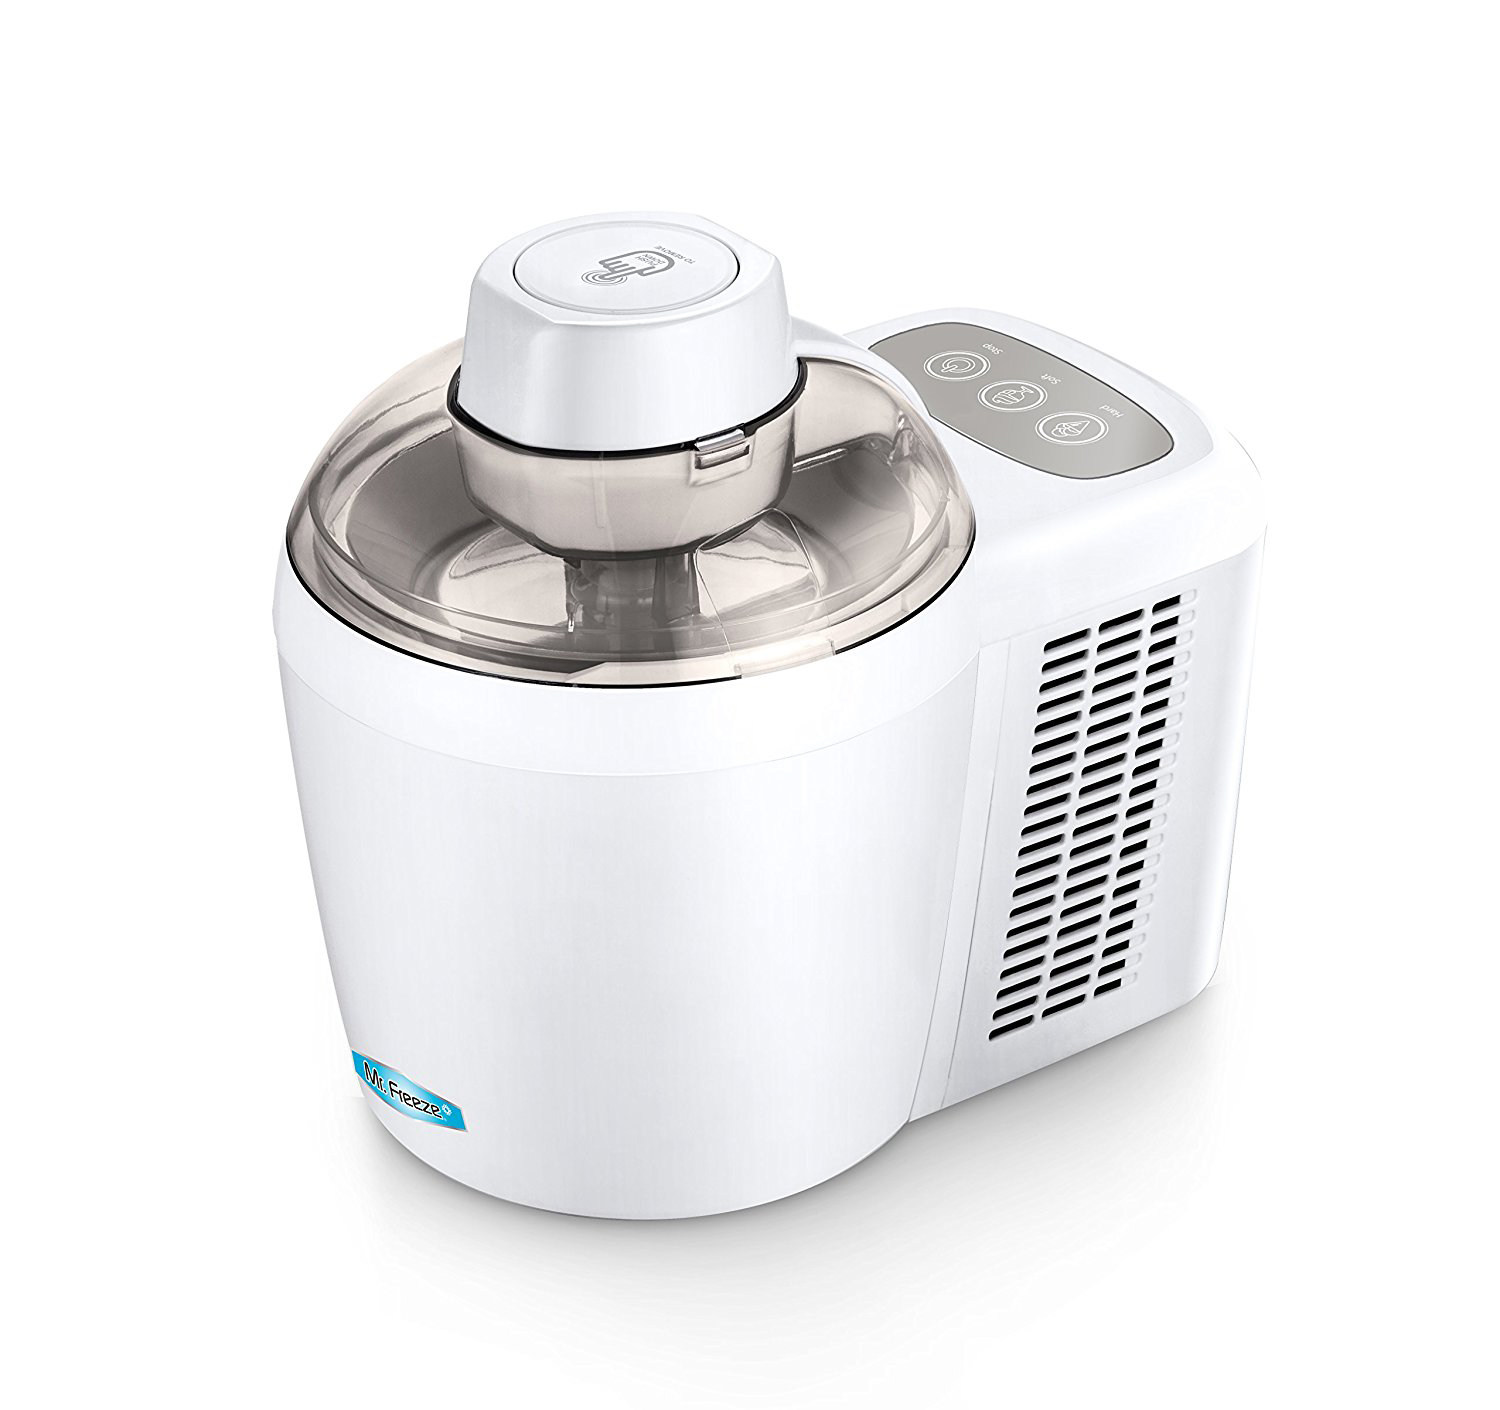 Mr. Freeze EIM-700T 1.5 Pint Thermo Electric Self-Freezing Ice Cream Maker, Turquoise